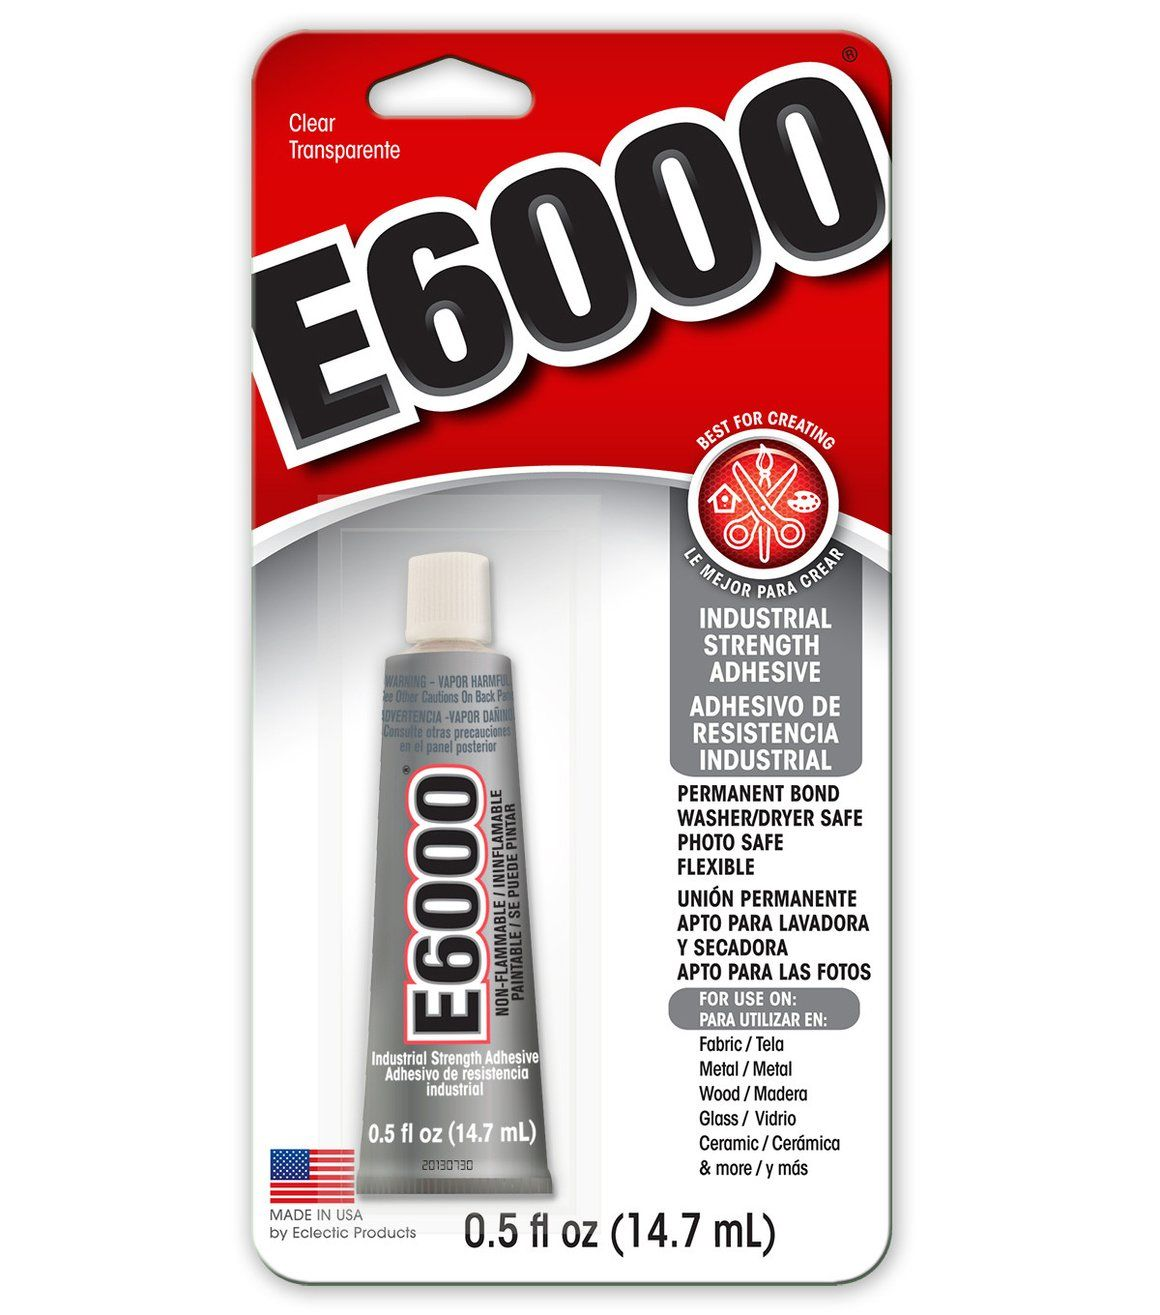 E 6000 Glue Waterproof Glue For Attaching Air Plants 0 5 Oz Waterproof Glue Adhesive Glue